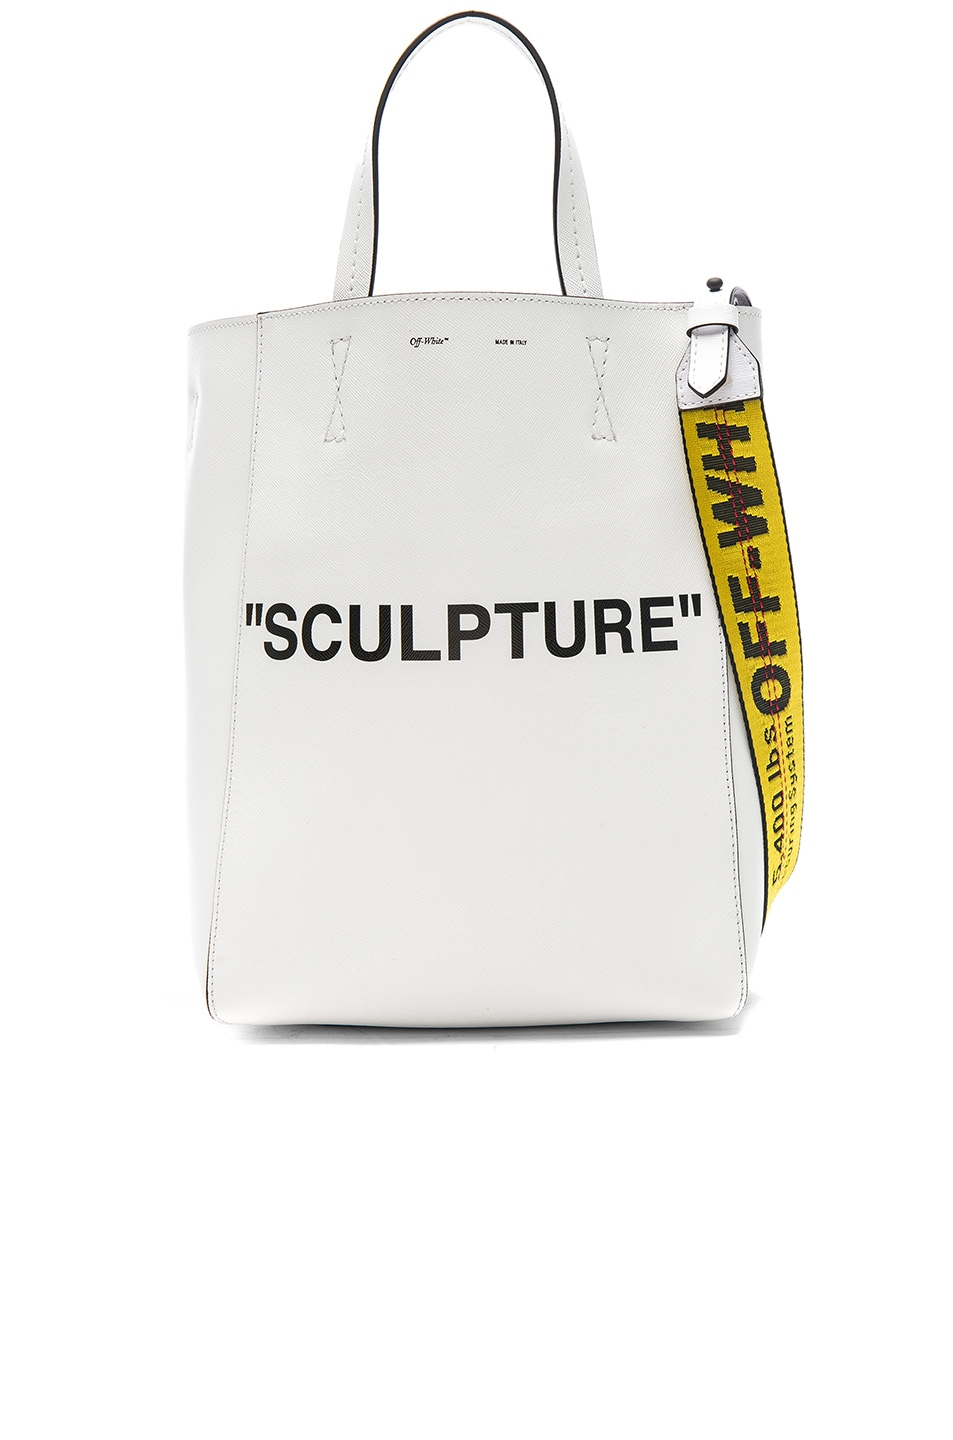 Off-white Womens Sculpture Medium Leather Tote Bag BOmty3ik